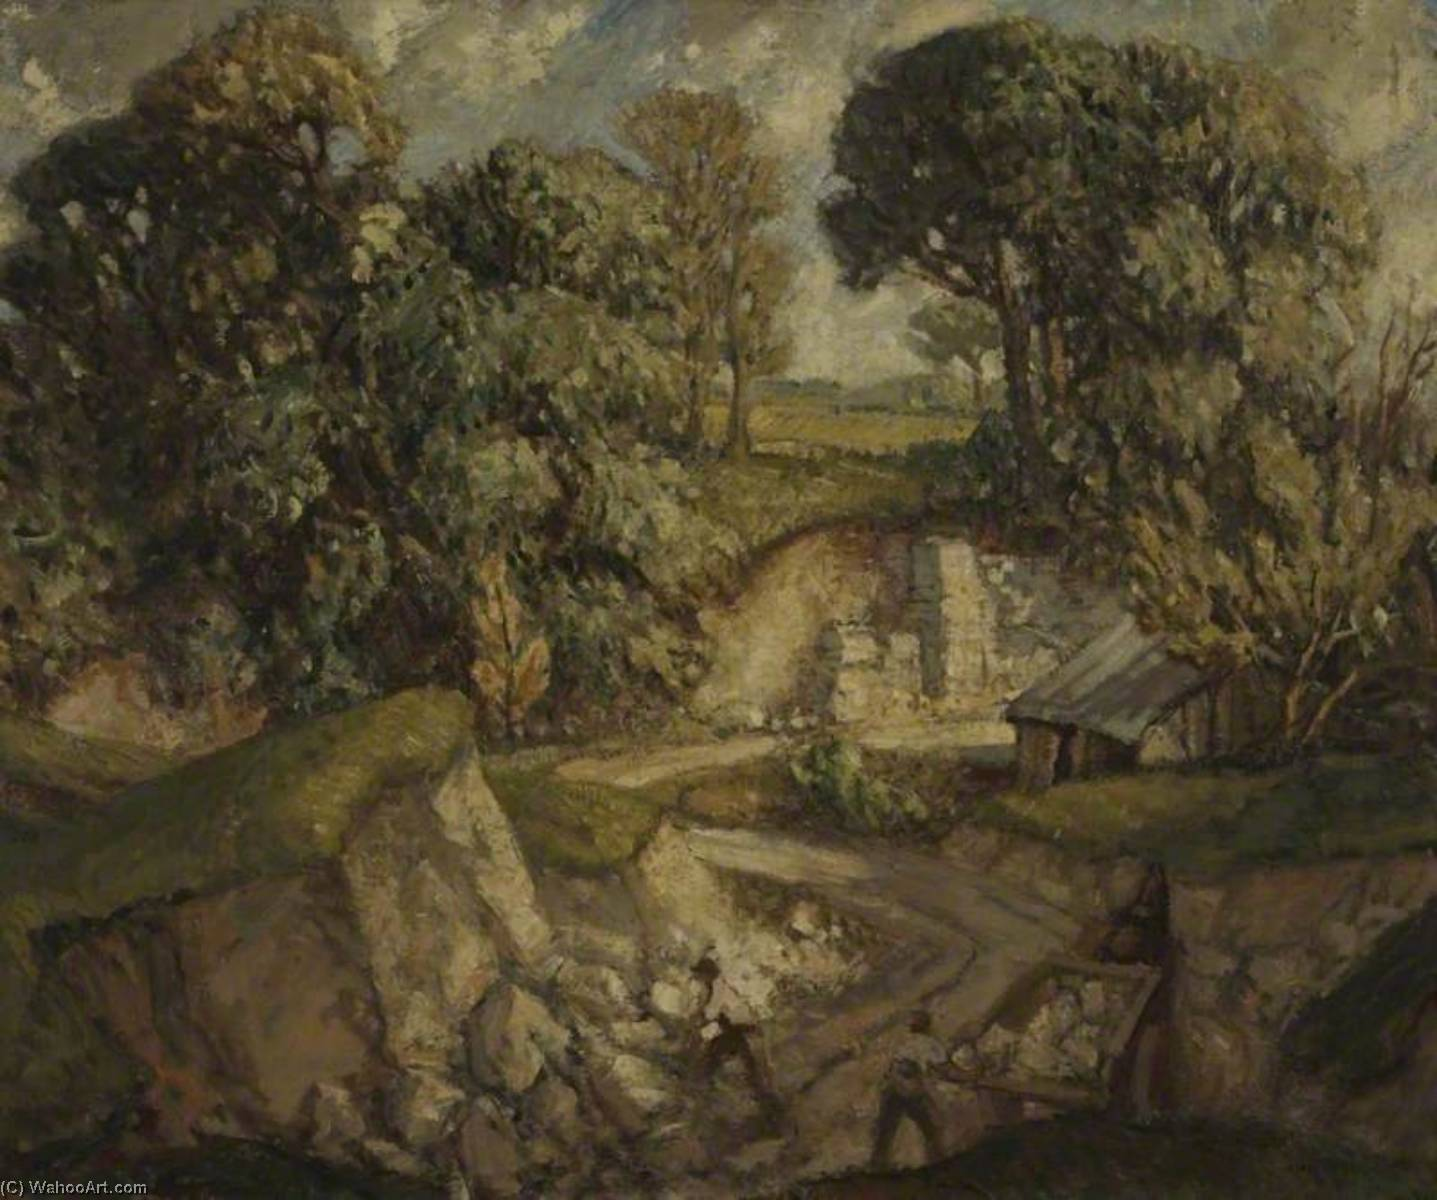 Wikioo.org - The Encyclopedia of Fine Arts - Painting, Artwork by Harry Morley - Dorset Chalk Quarry